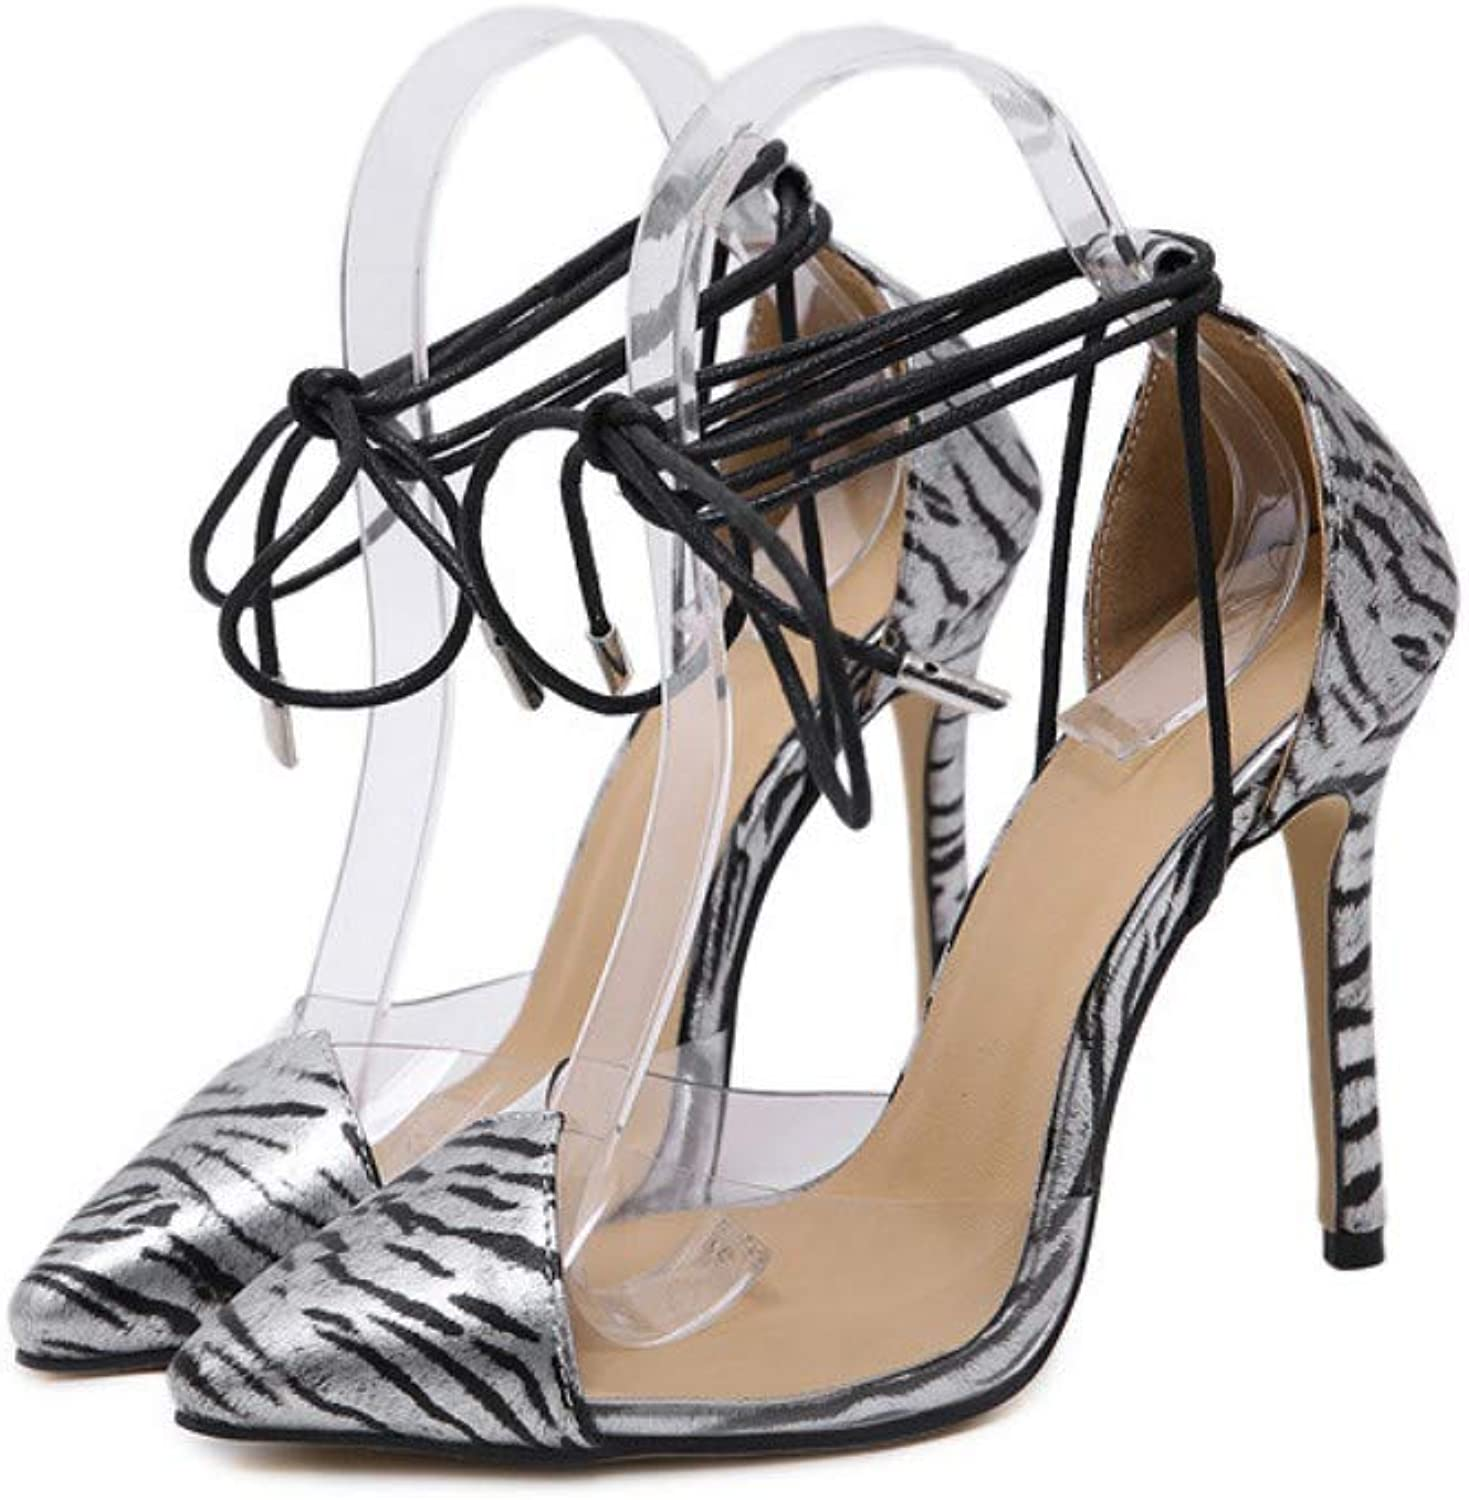 JQfashion Women's High-Heeled Sandals Sexy Pointed Thin-Heeled Transparent Hollow Strap-On Roman shoes